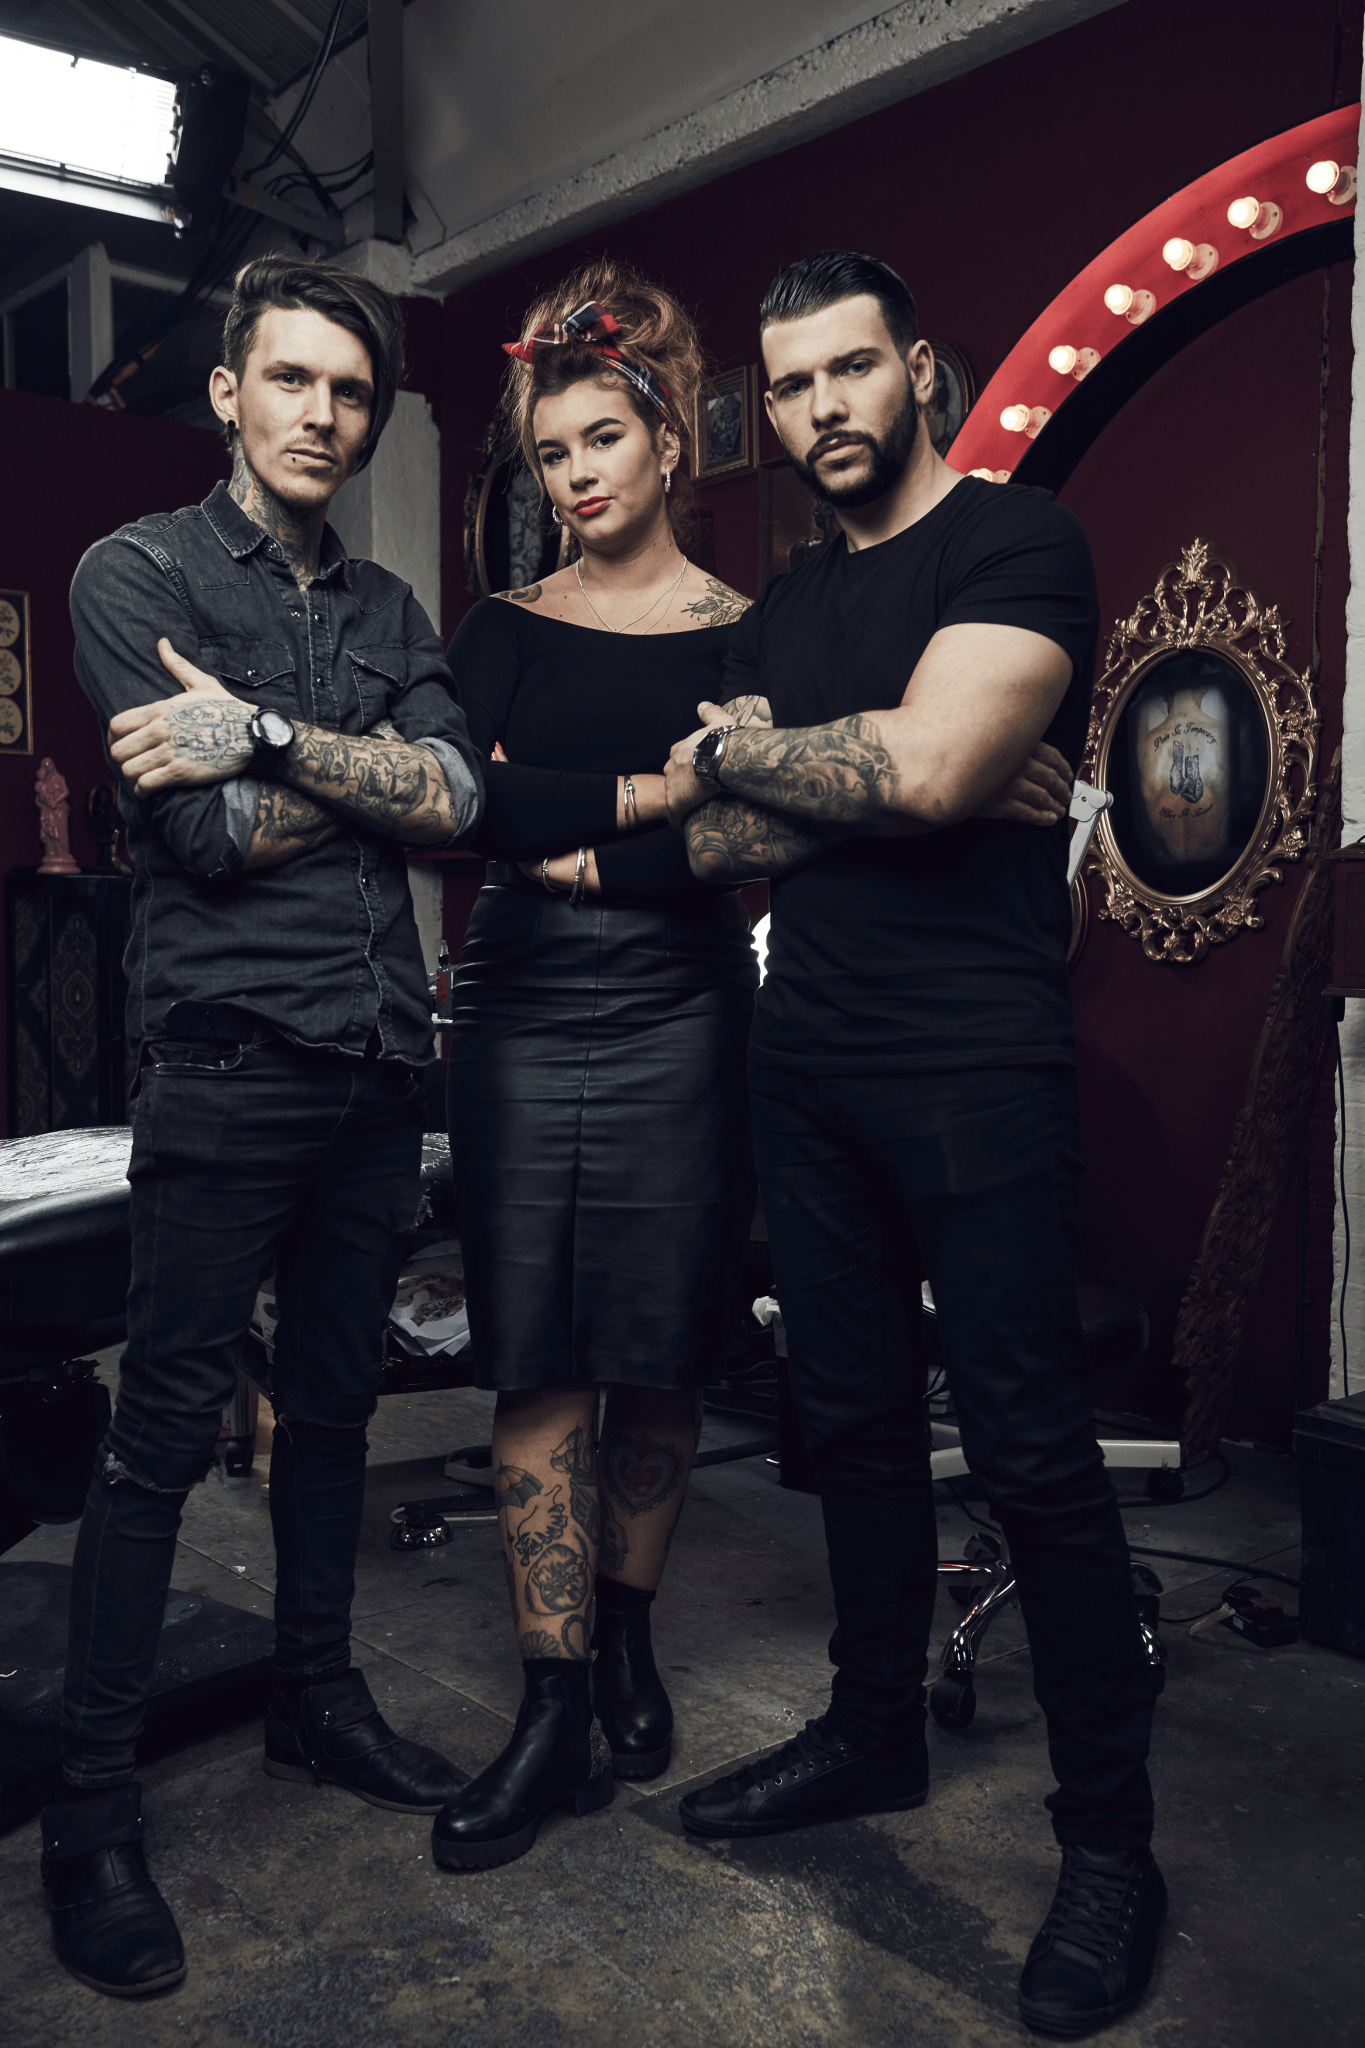 Sketch, Jay and Alice from Channel 4's Tattoo Fixers – Loaded